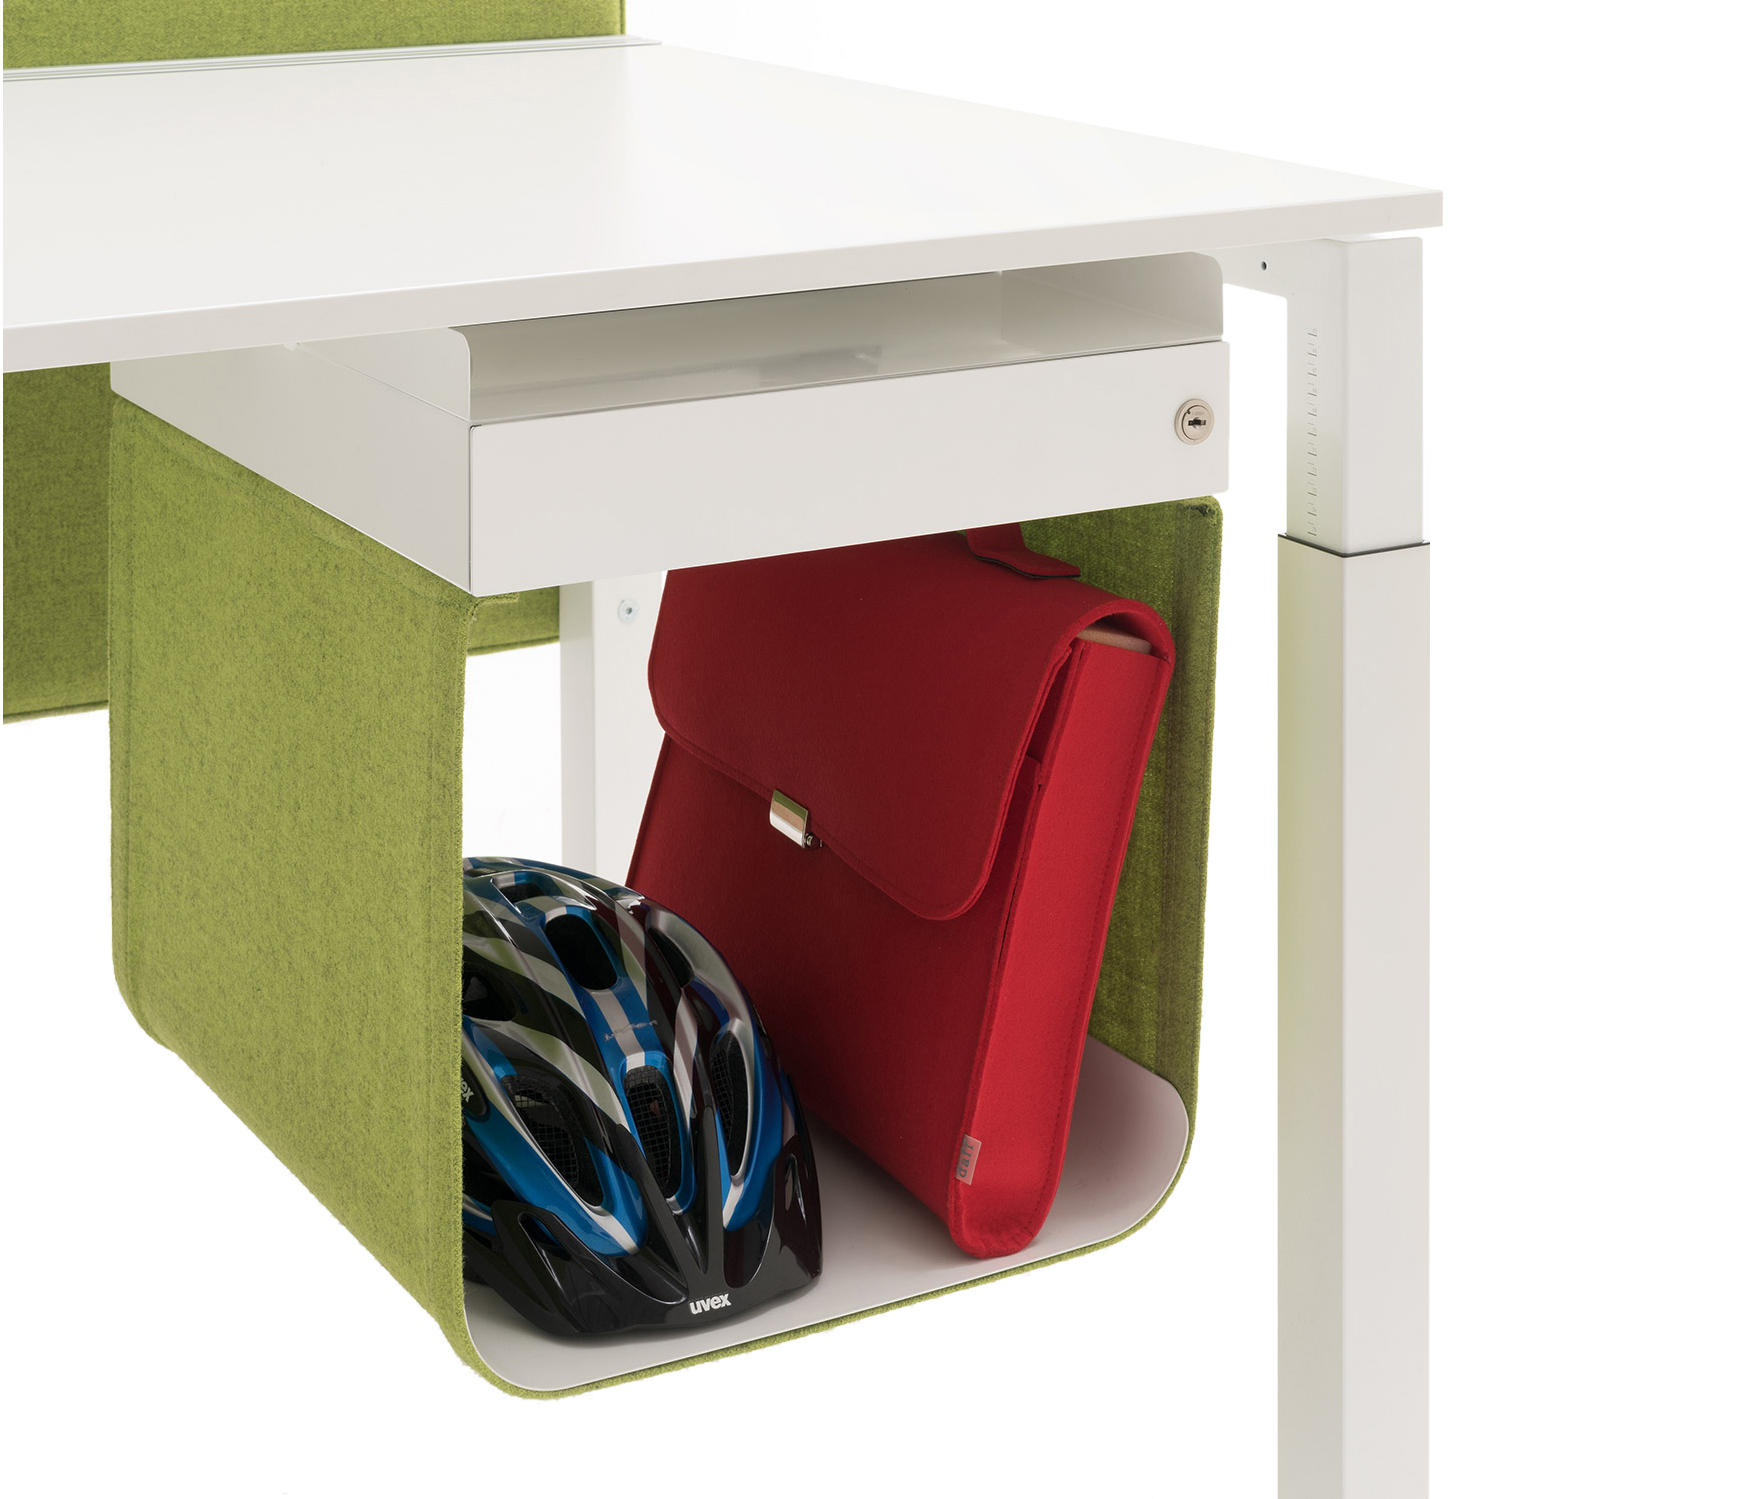 WINEA TOOLZ MYBOX - Shelves from WINI Büromöbel | Architonic